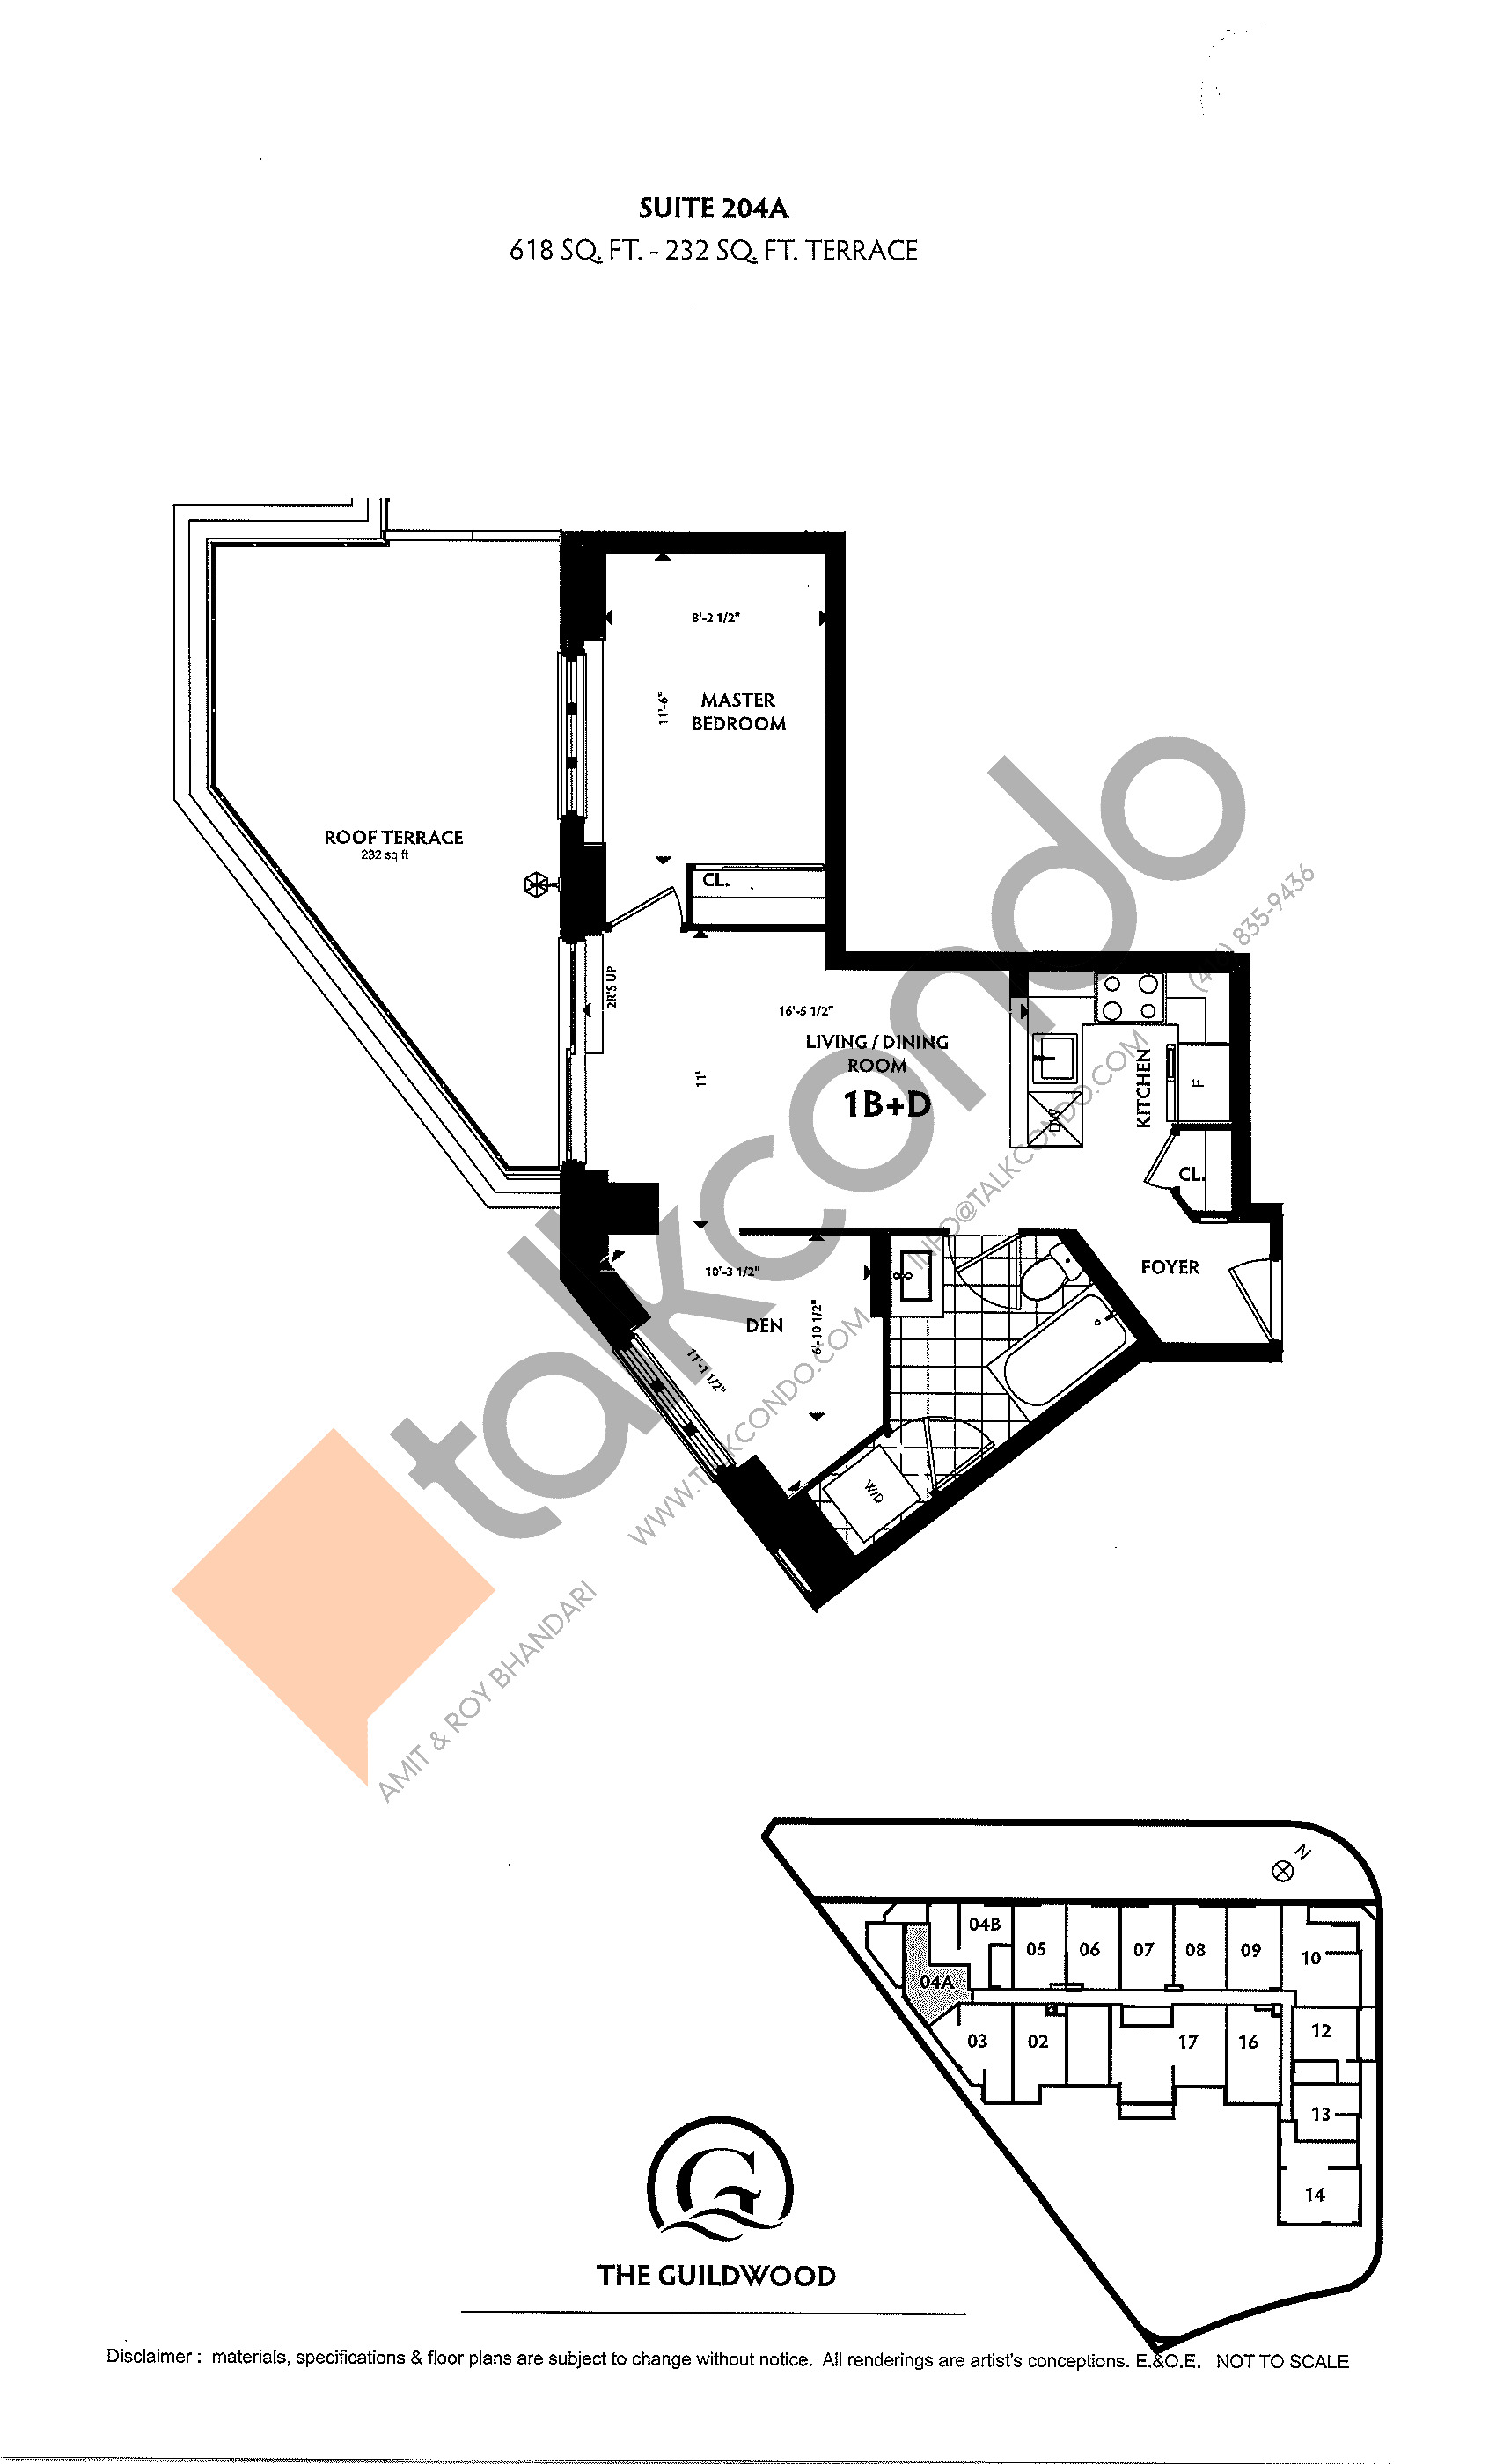 Suite 204A Floor Plan at Guildwood Condos - 618 sq.ft